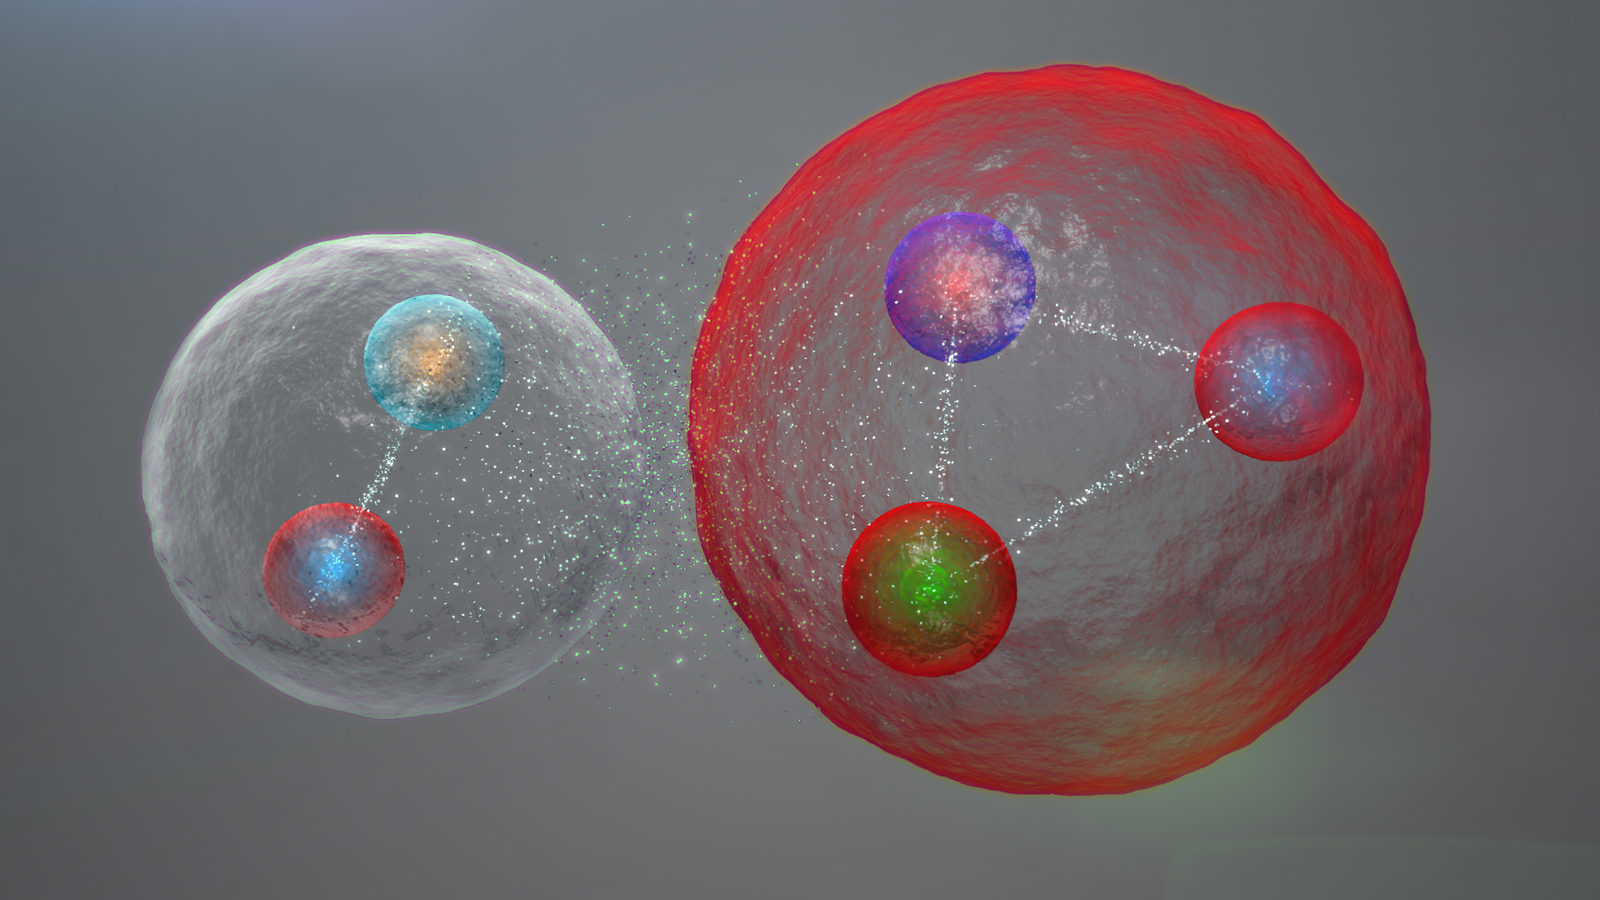 Illustration showing the pentaquark as a molecule